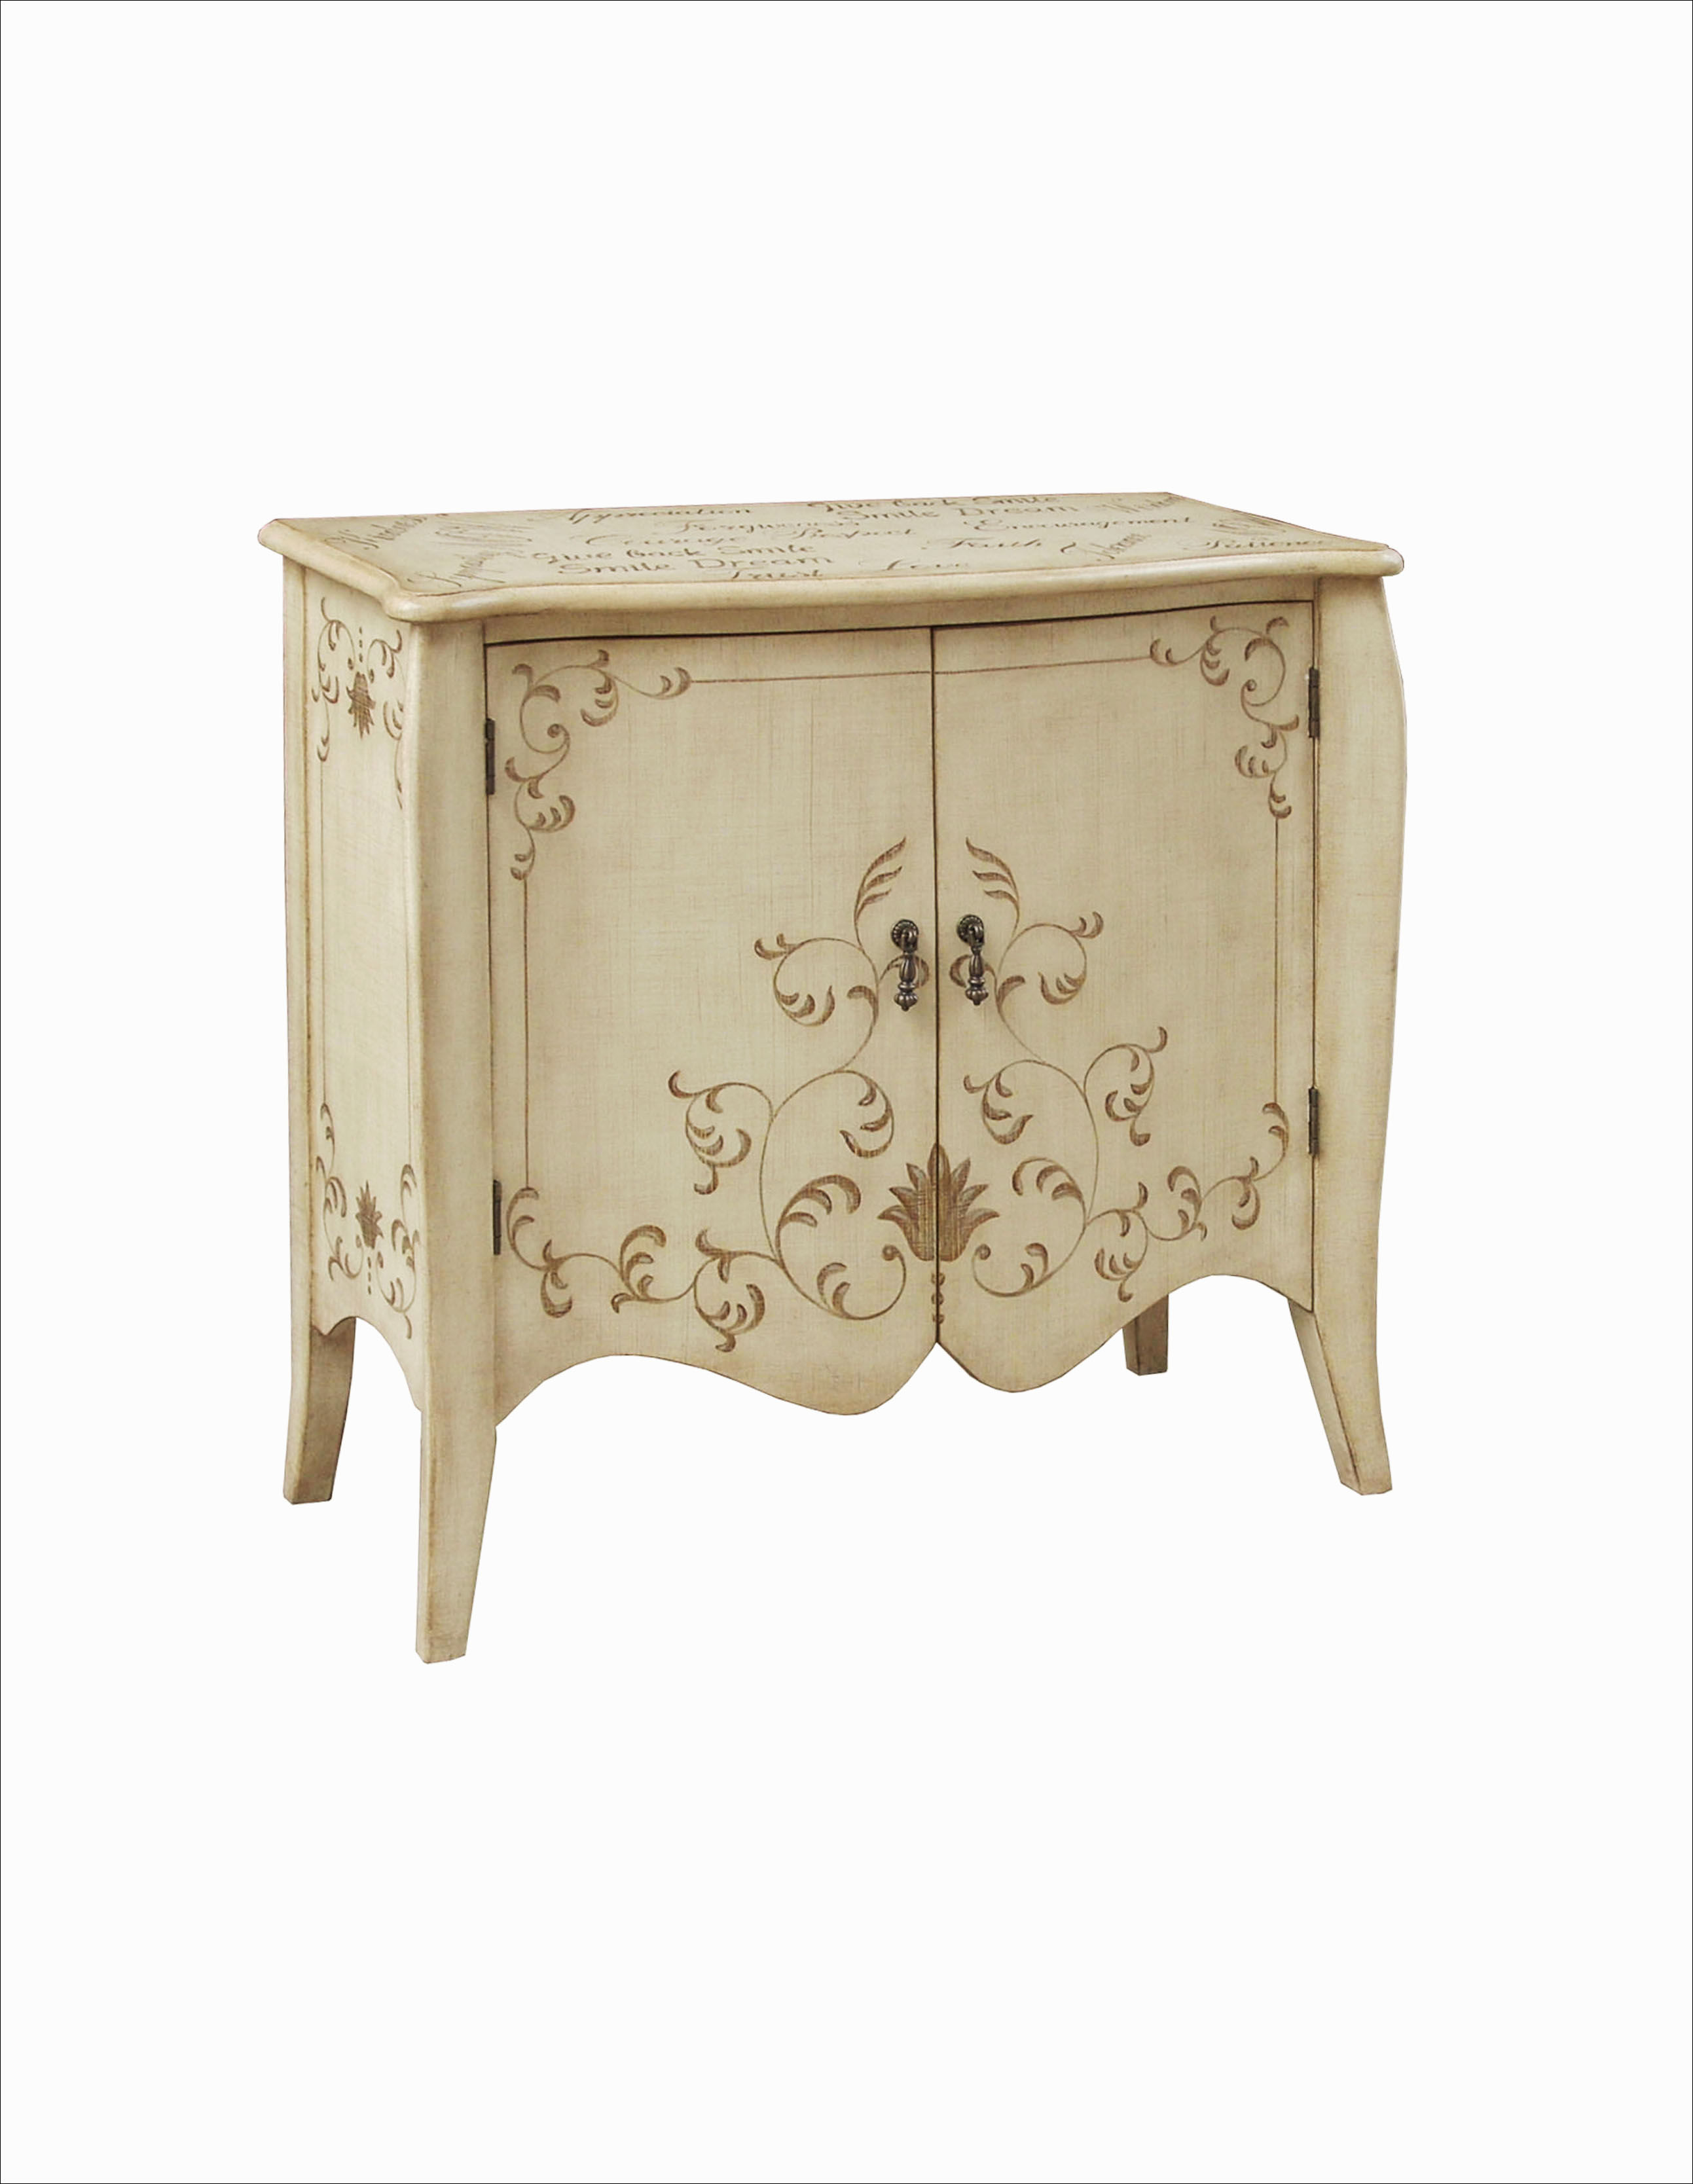 modern ivory wood hand painted accent chest the classy home plf tables chests mirrored dining table and chairs gold round end steel garden bistro small outdoor coffee living room